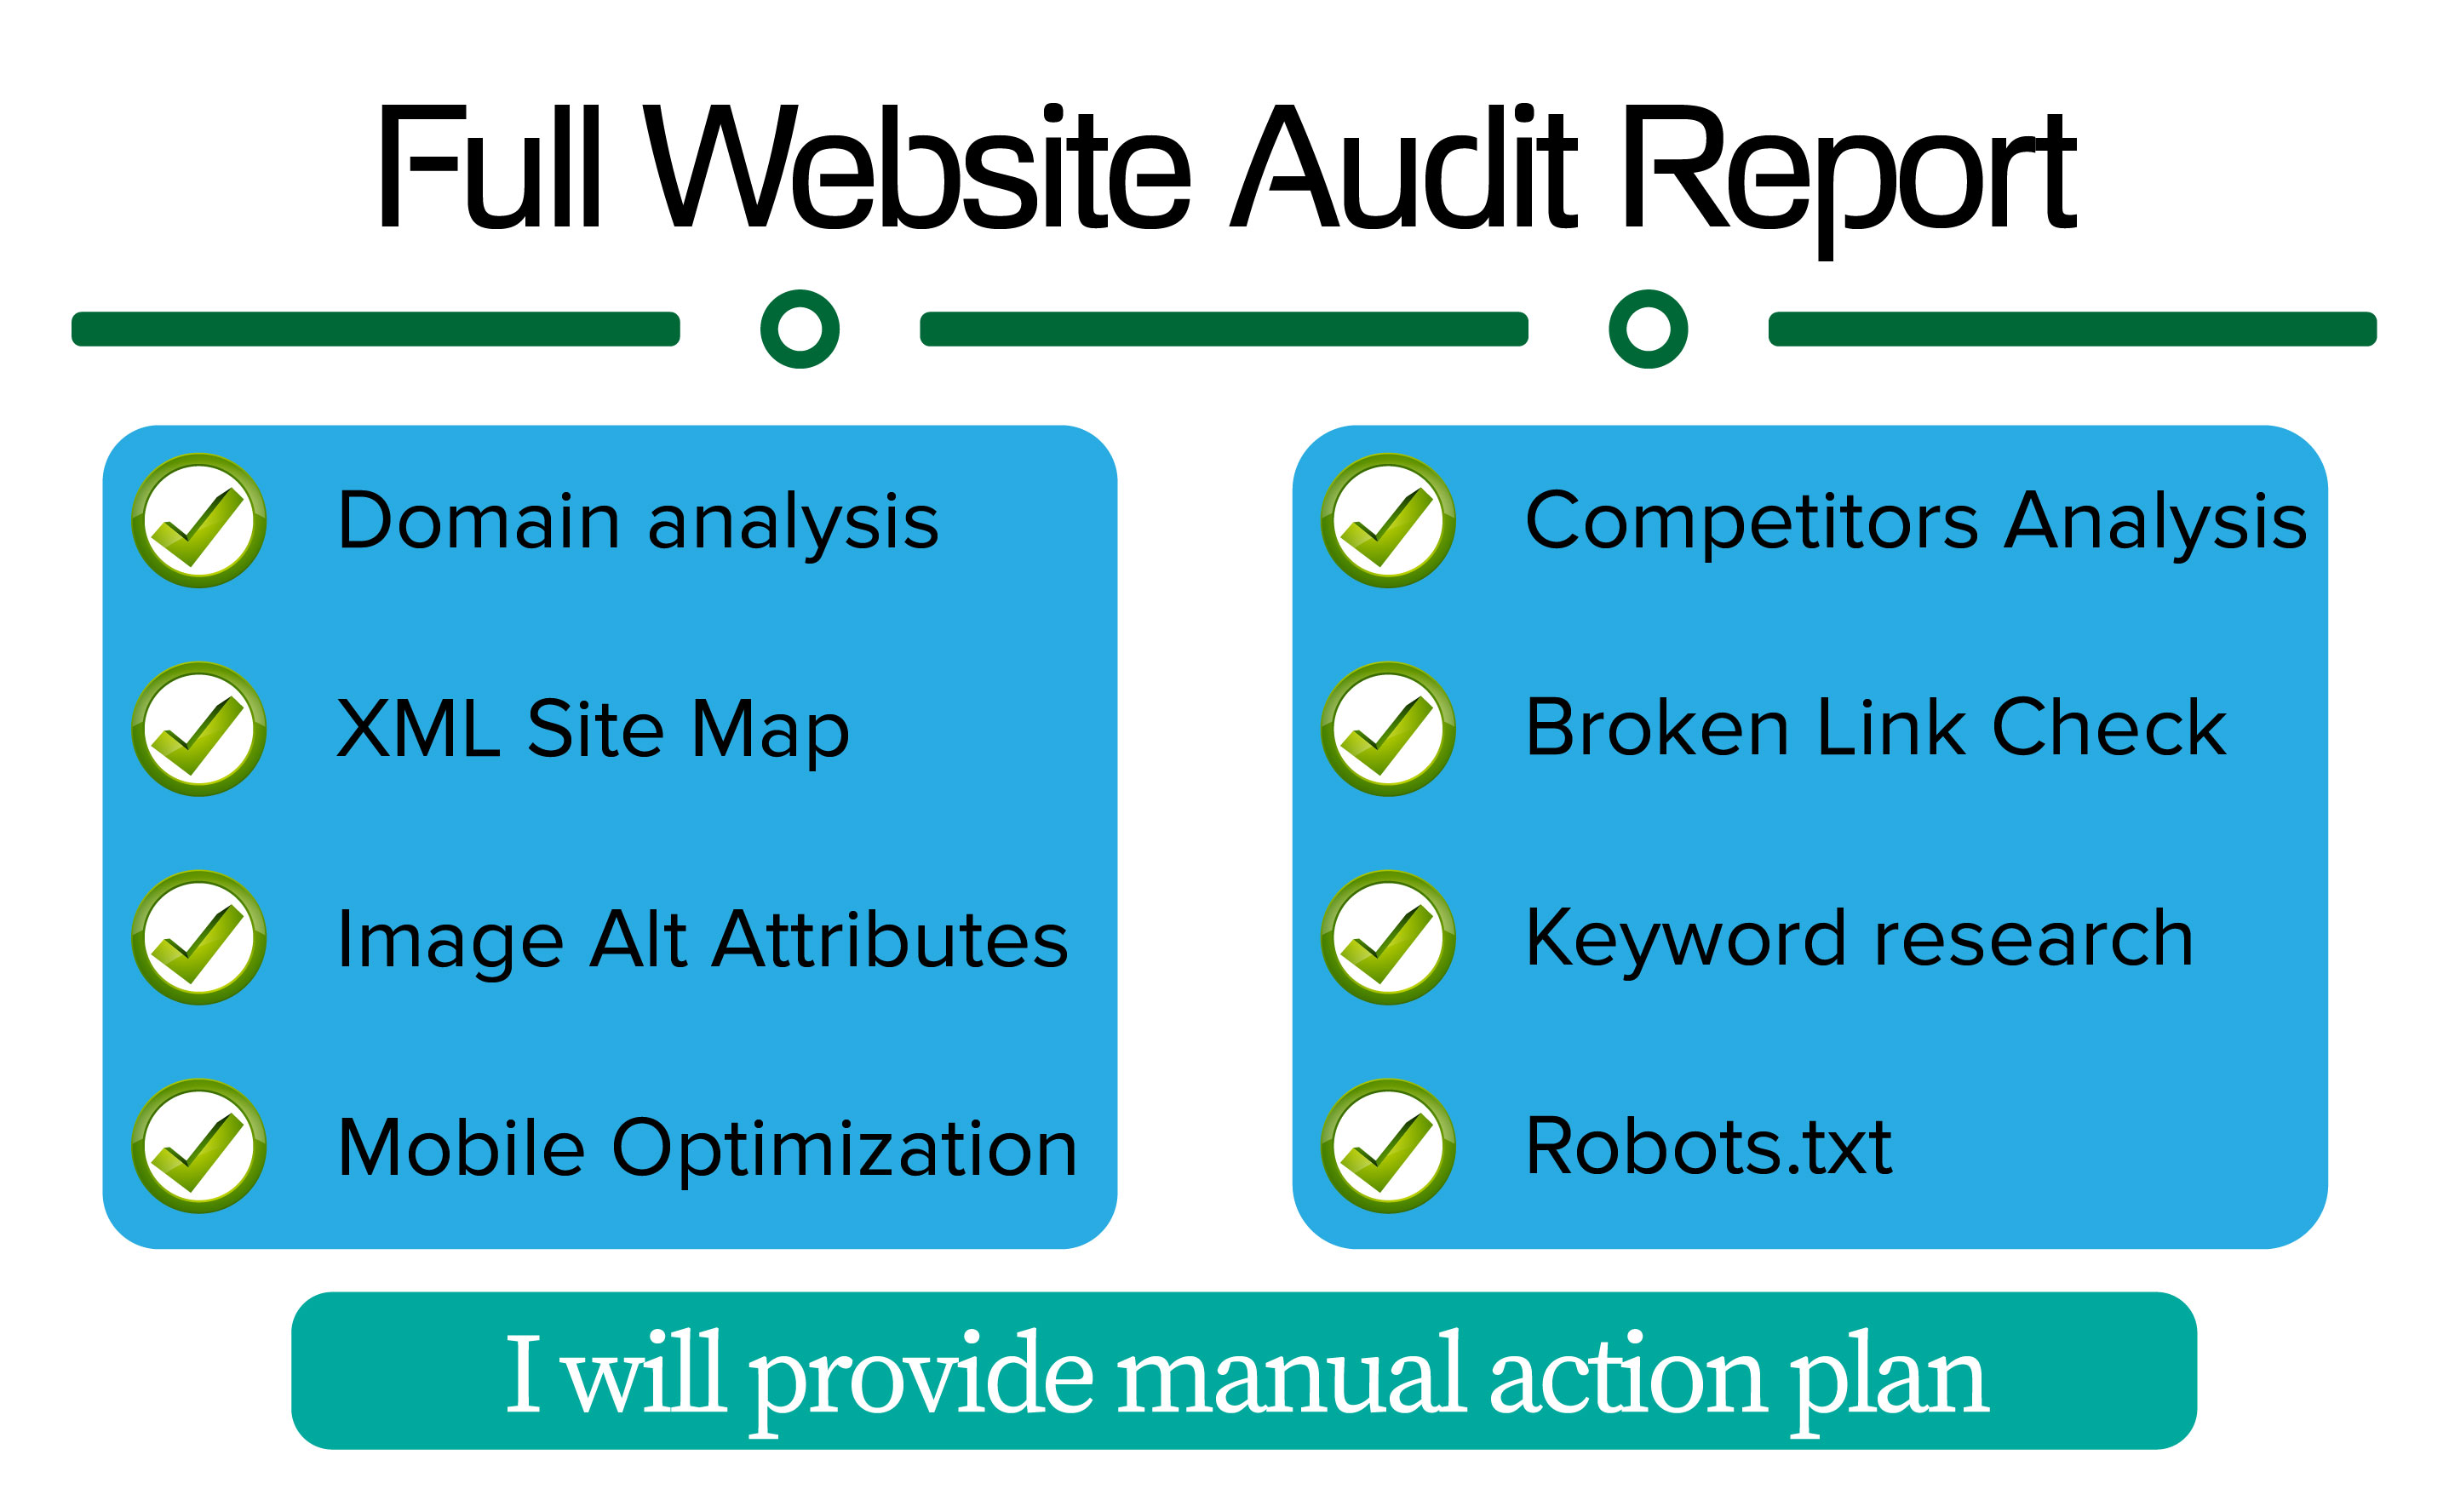 Complete website SEO audit and provide an action plan